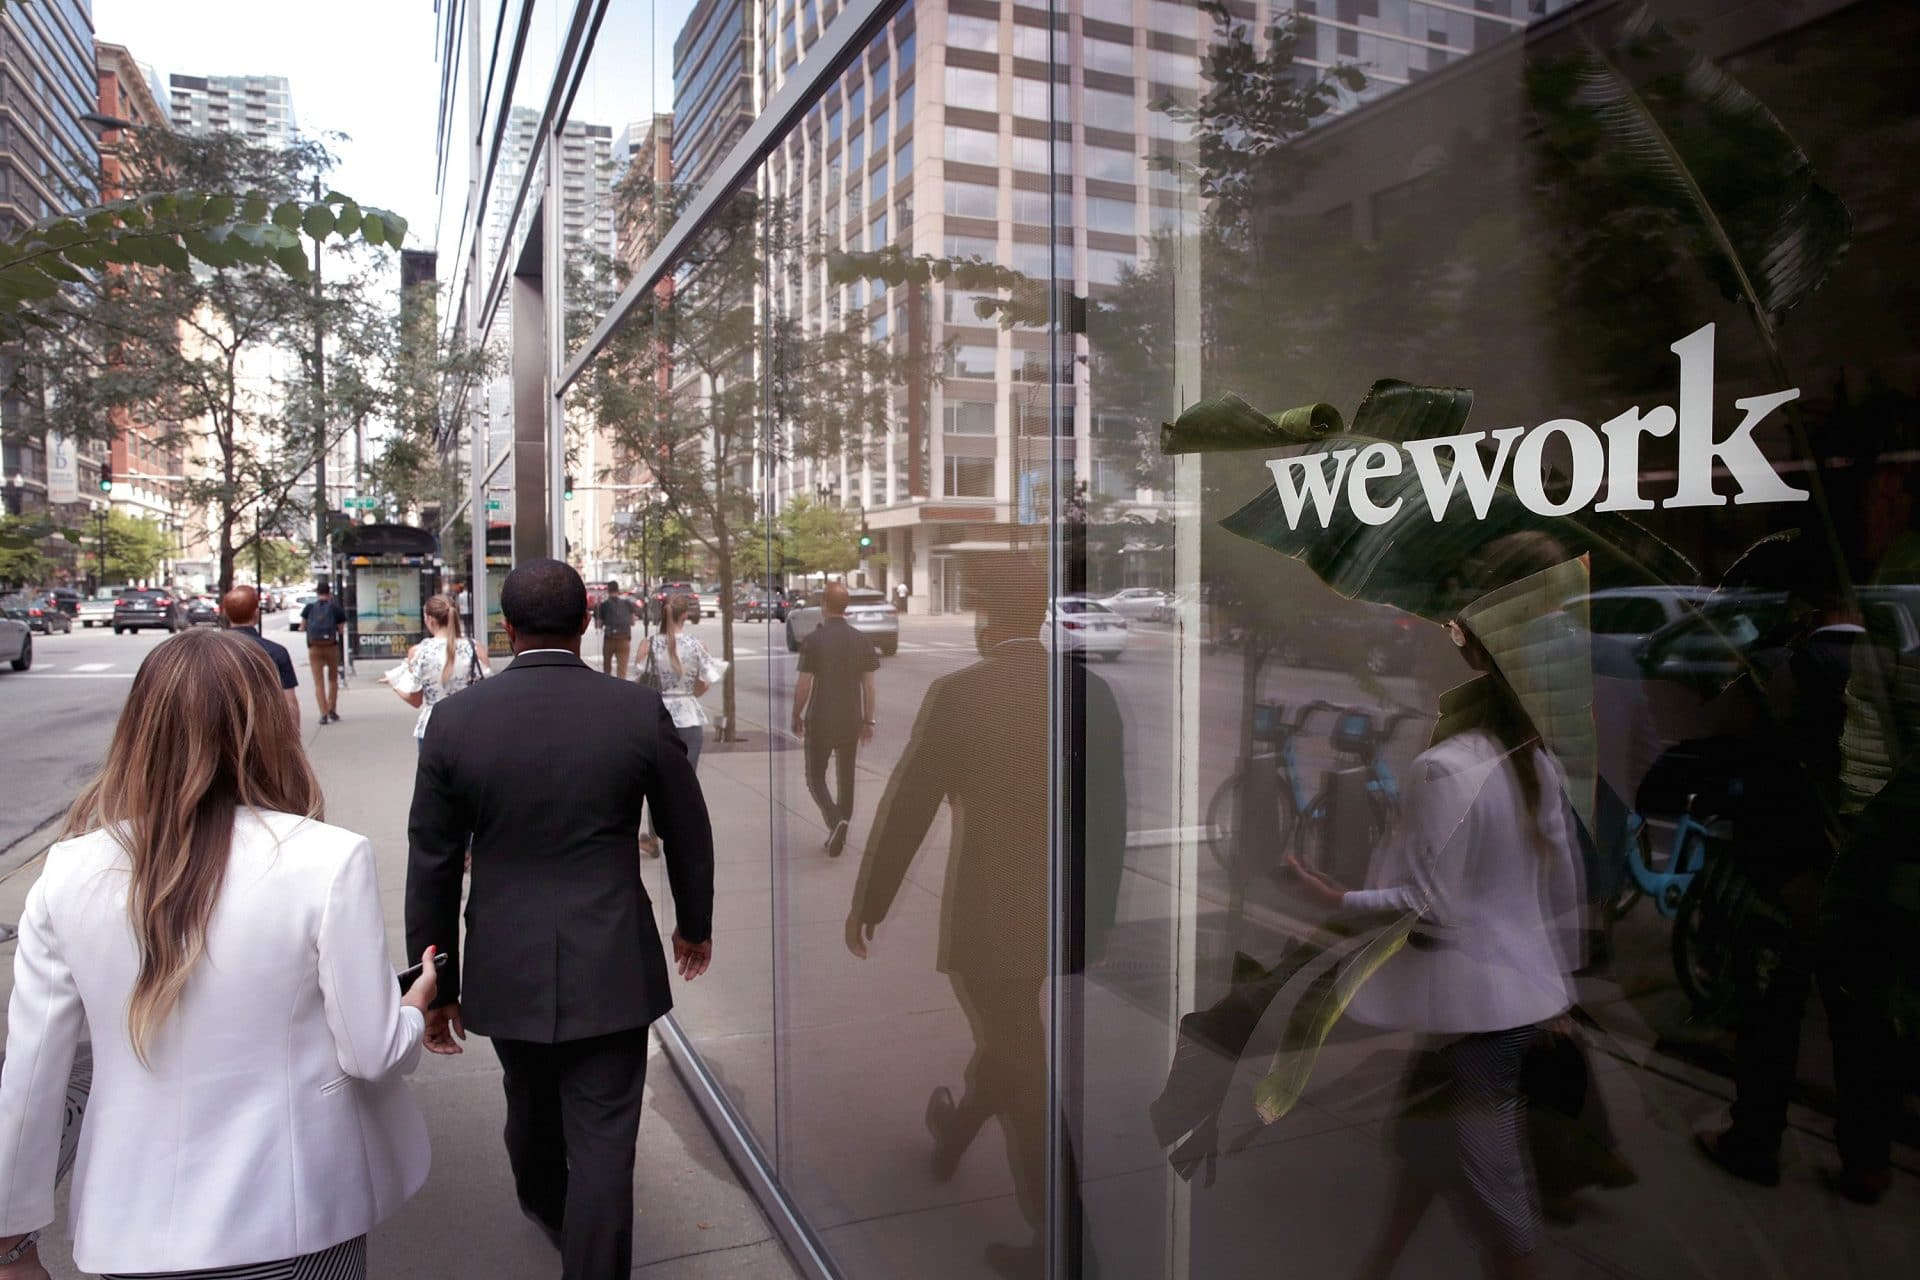 Without deal, WeWork would have been out of money next Friday, sources say